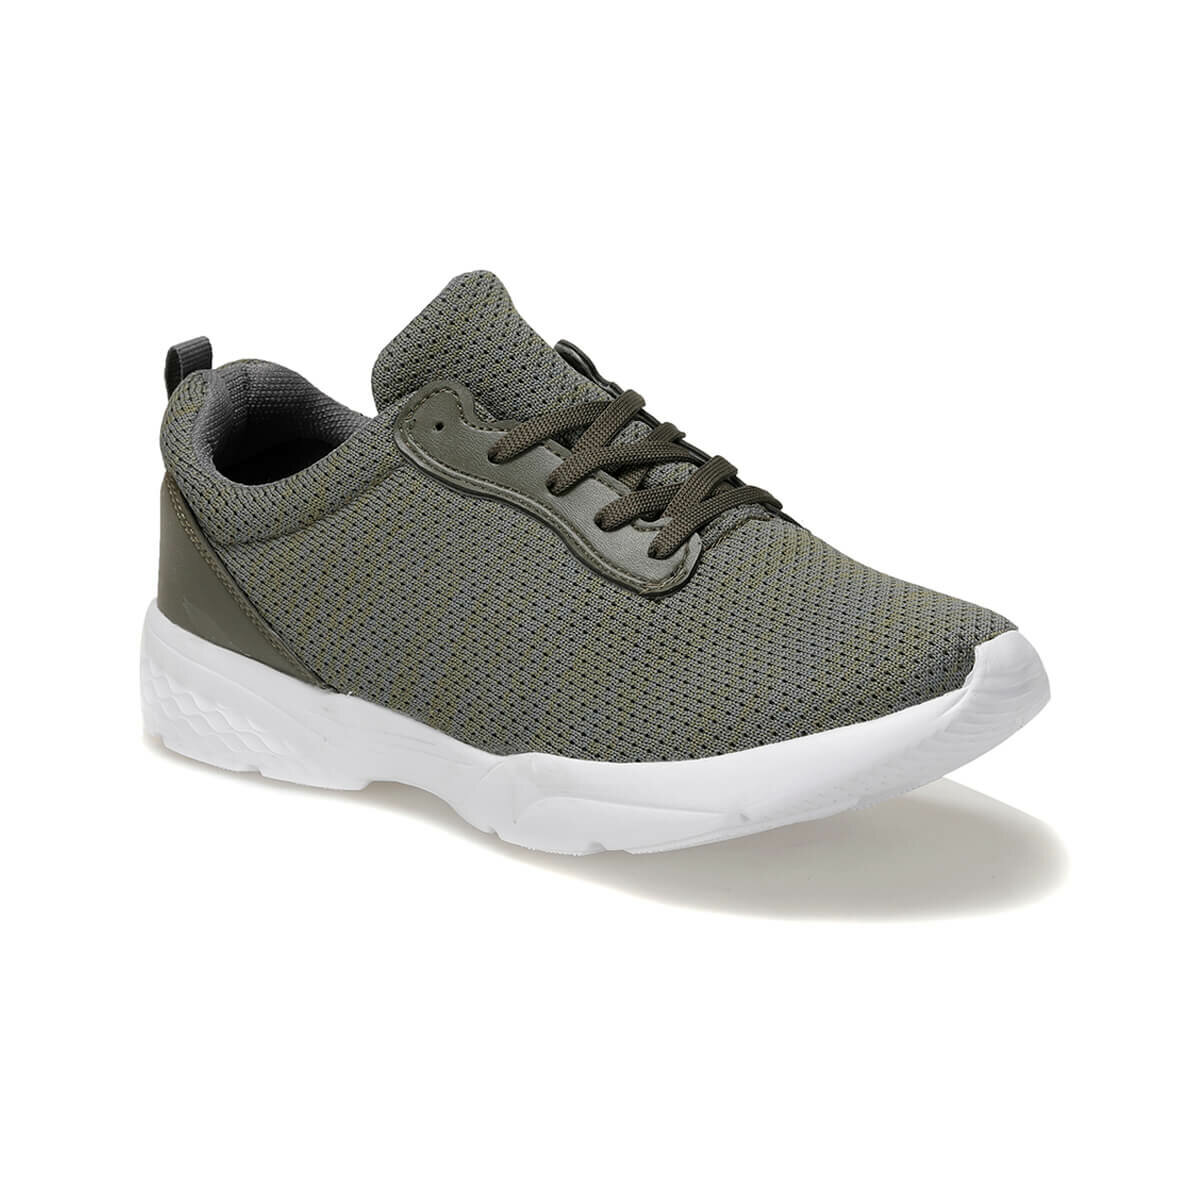 FLO ALVEN Khaki Men 'S Sneaker Shoes Torex